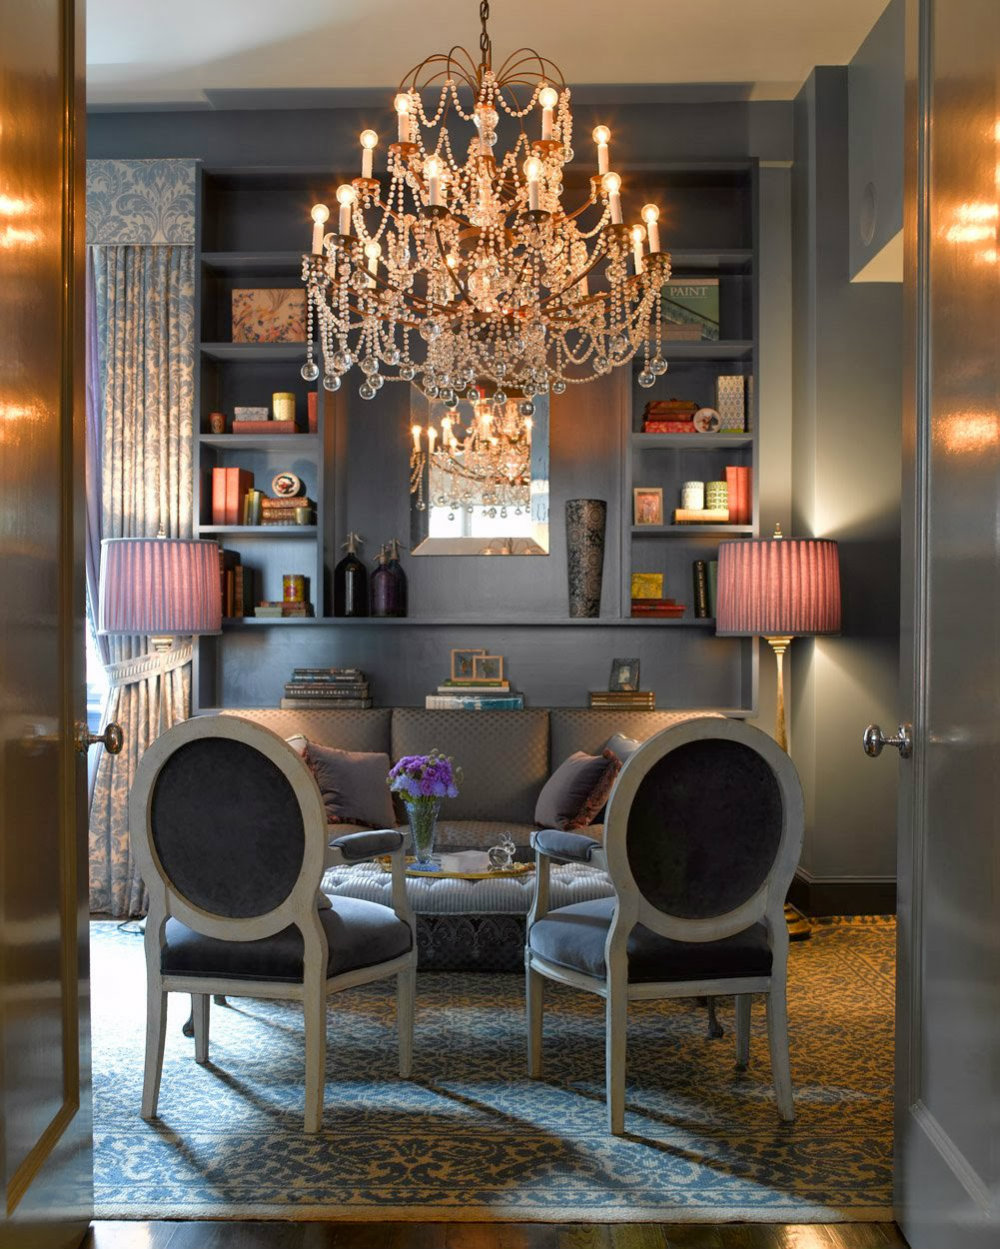 5 Crystal Chandeliers To Elevate Your Interiors Bedroom Design Ideas Bedroom Design Ideas From Top Interior Designers 5 Crystal Chandeliers To Elevate Your Interiors 01 Bedroom Design Ideas Bedroom Design Ideas From Top Interior Designers 5 Crystal Chandeliers To Elevate Your Interiors 01